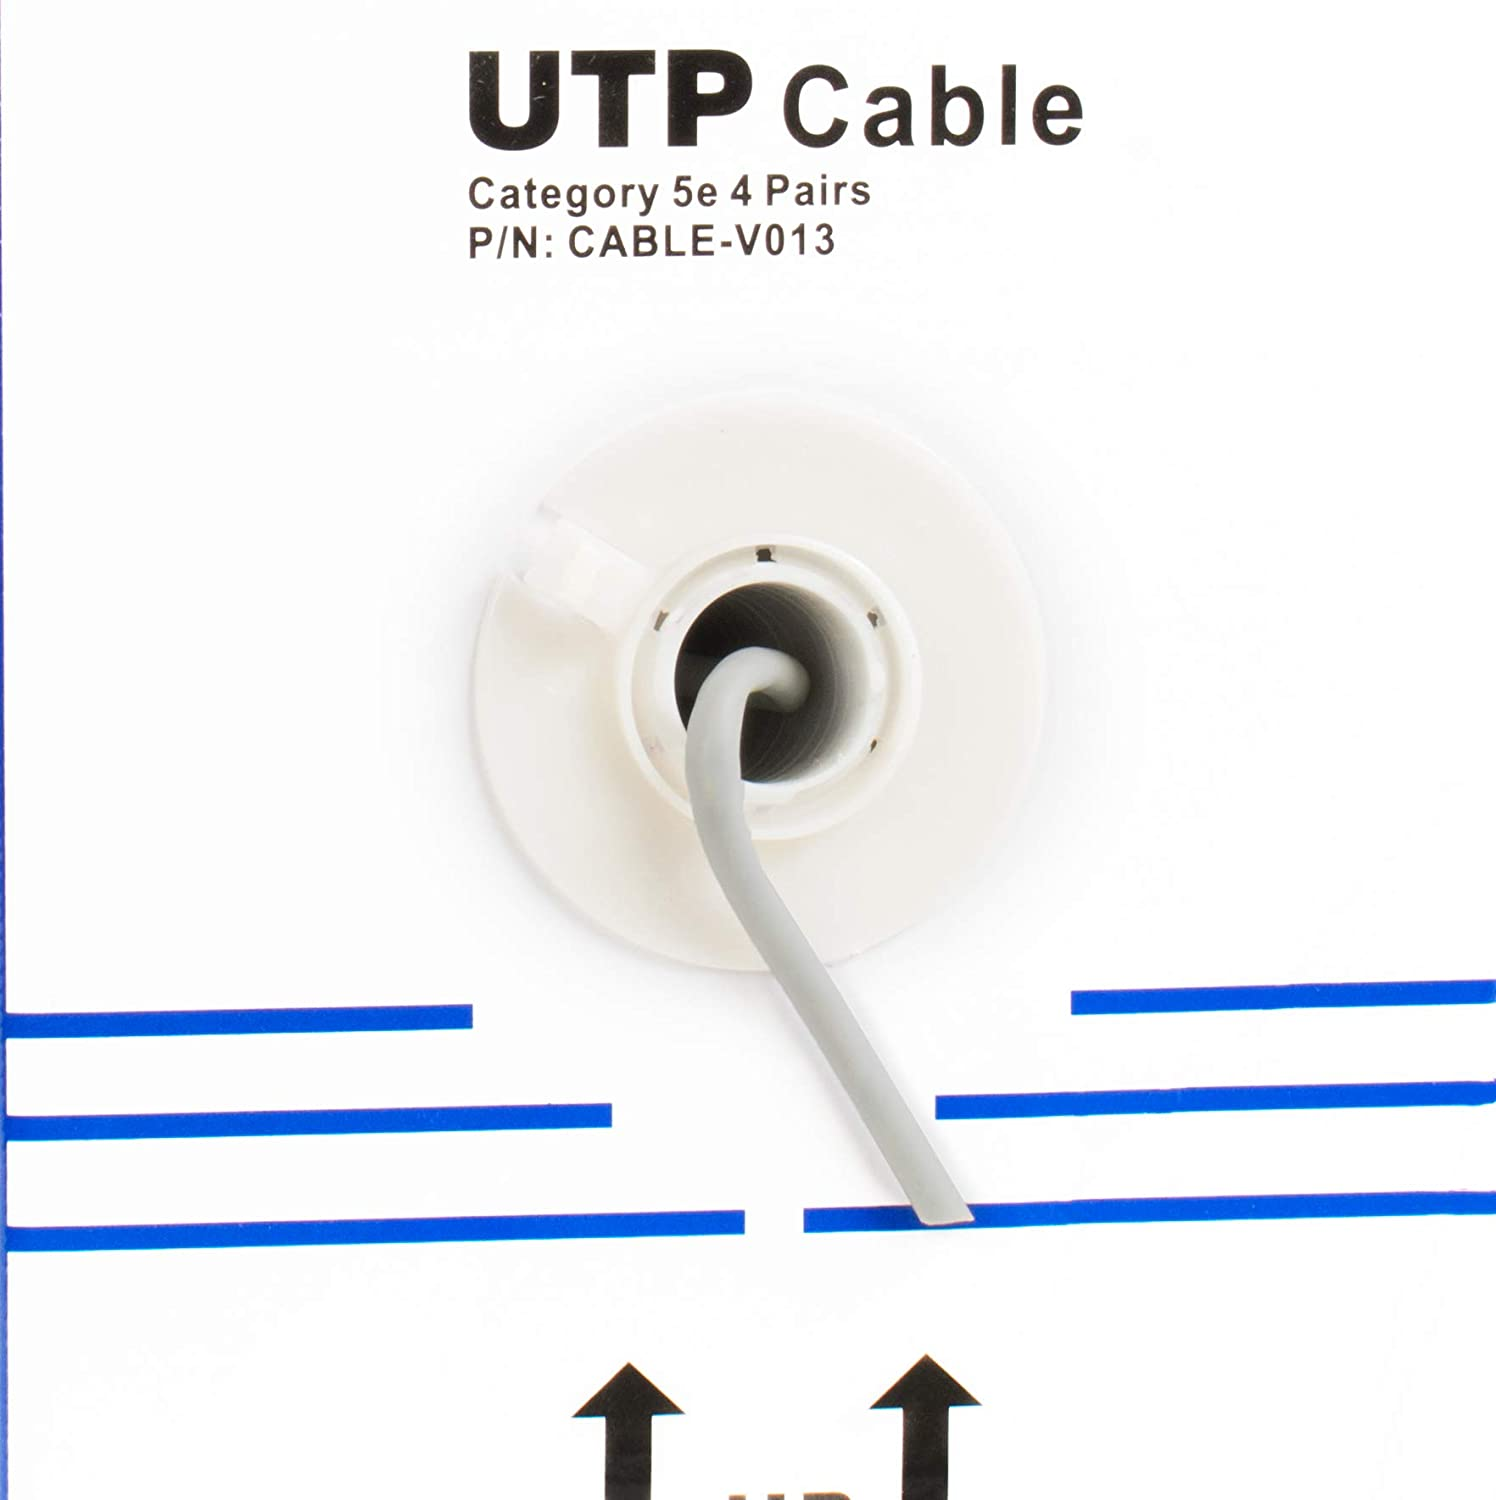 Cat 6 Cable Wiring Diagram Additionally Ether Crossover Cable Wiring